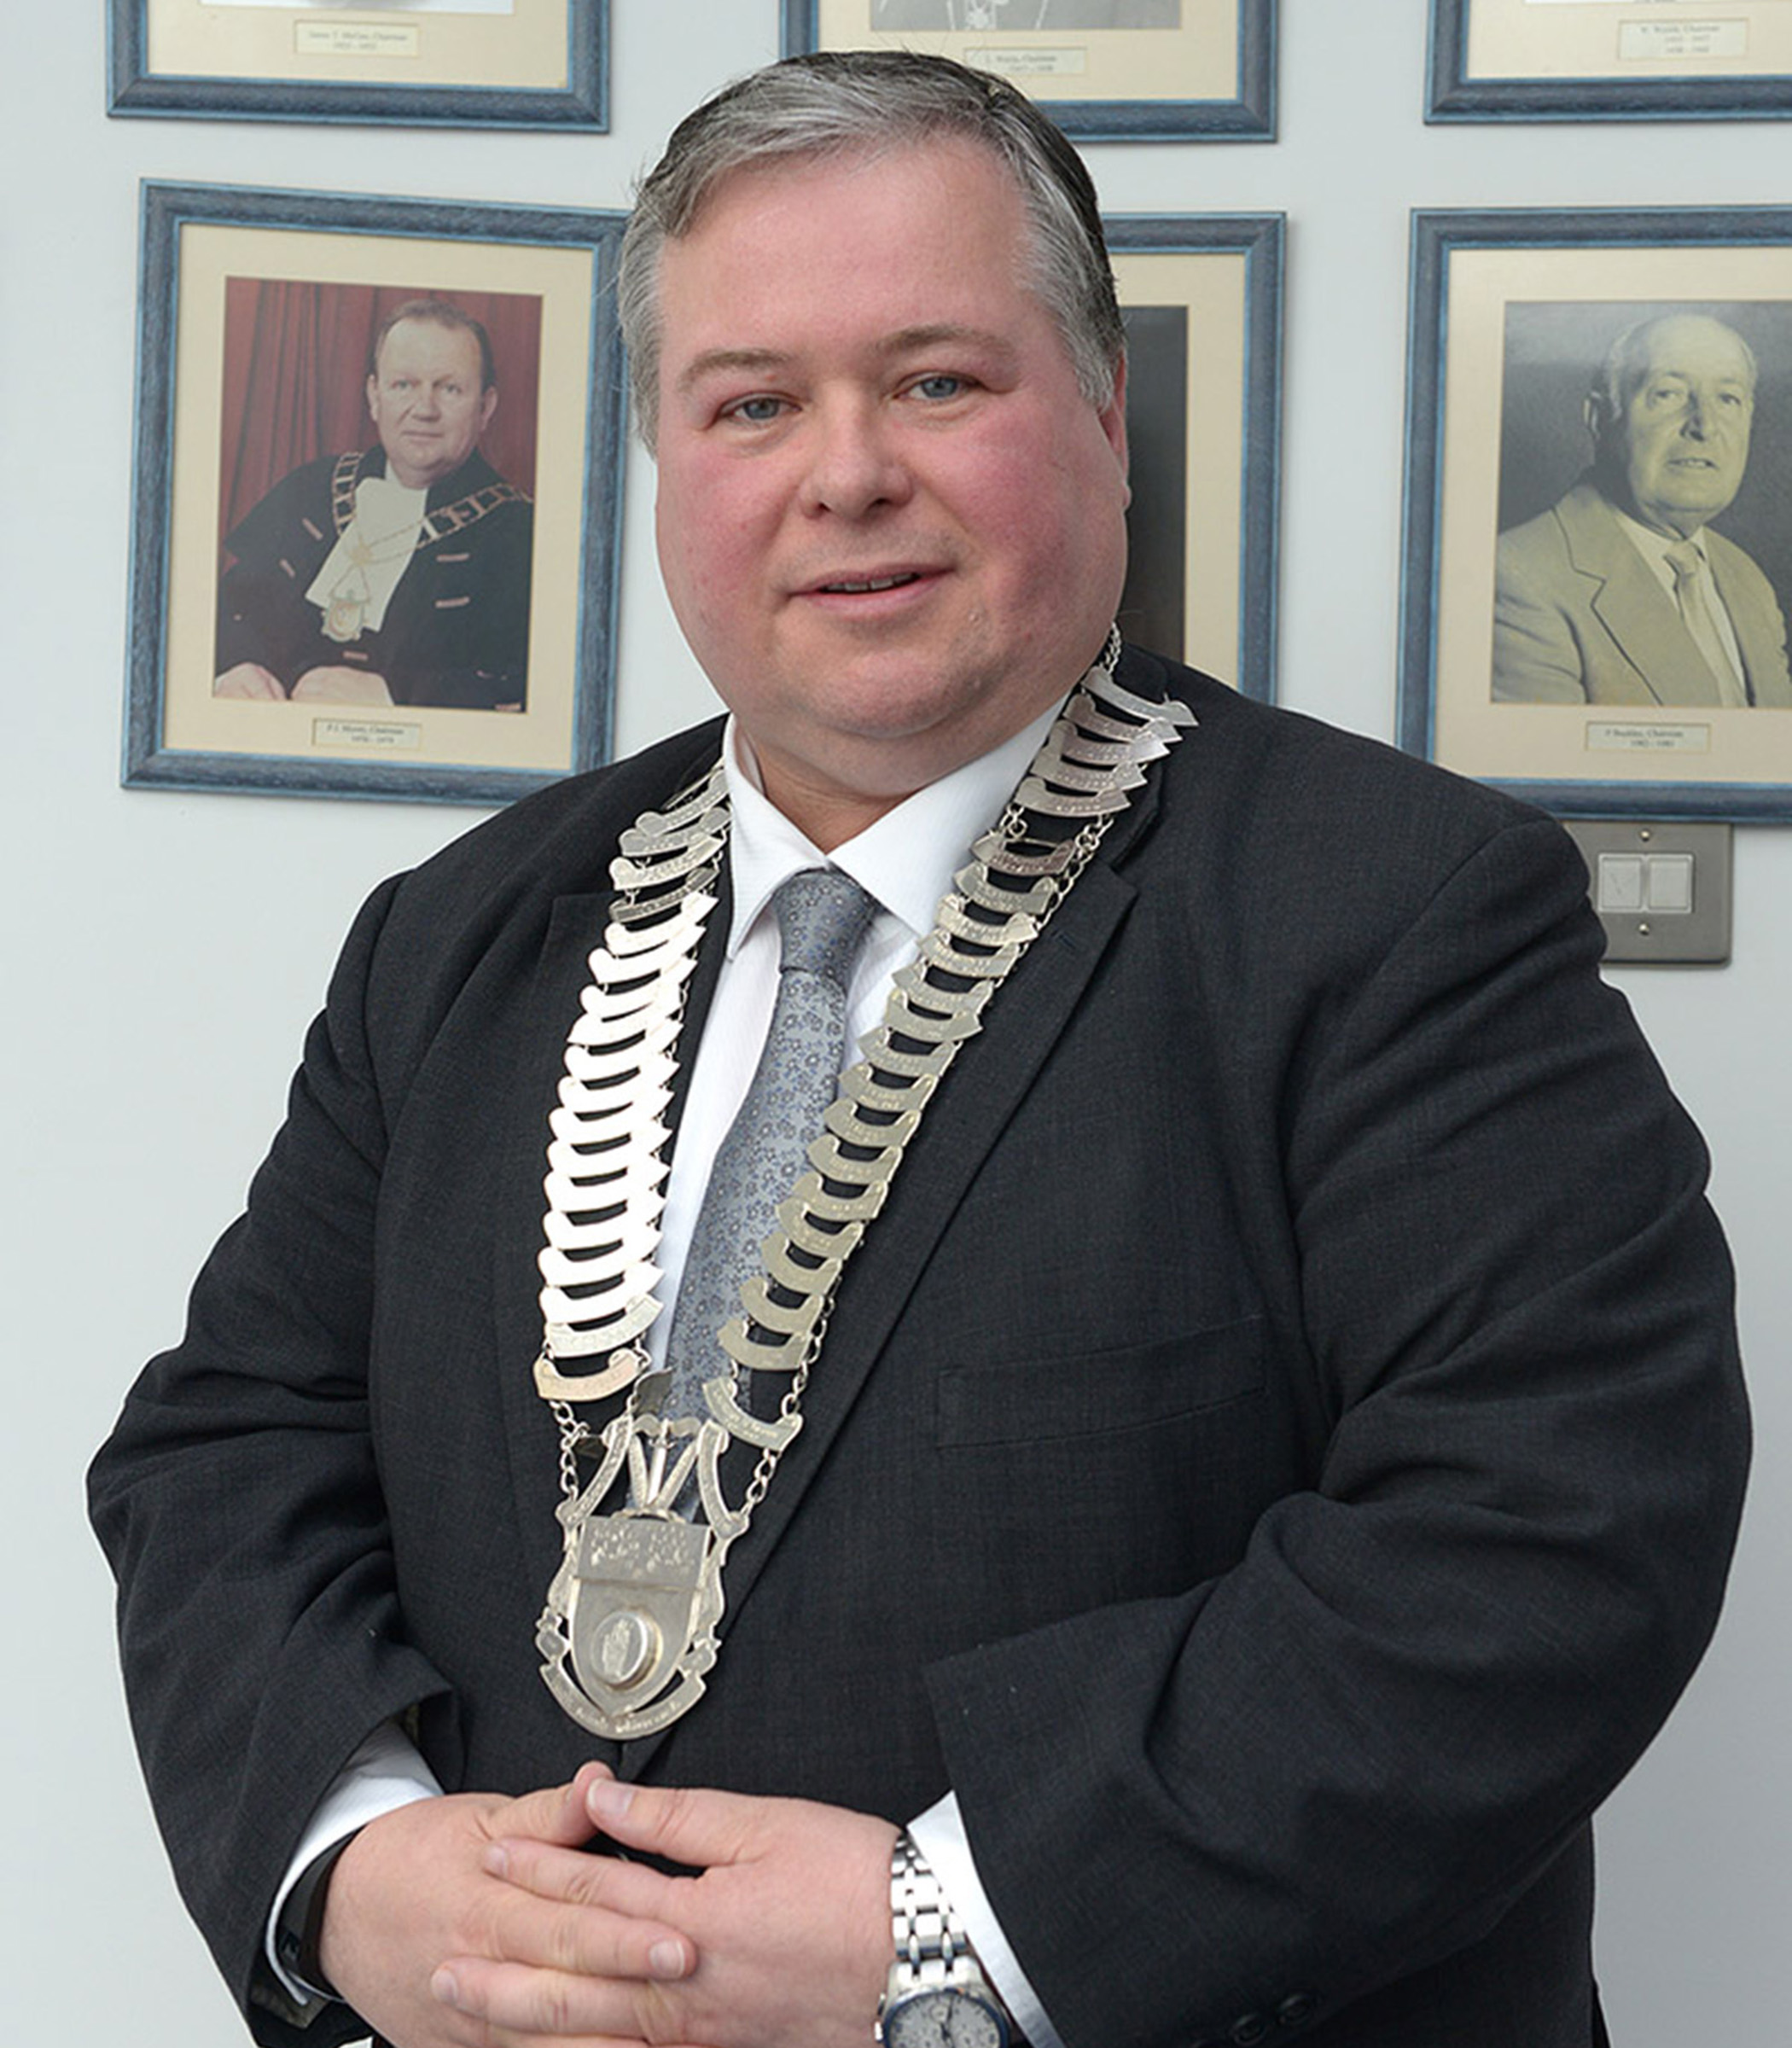 Cllr Paul Bell with Chains